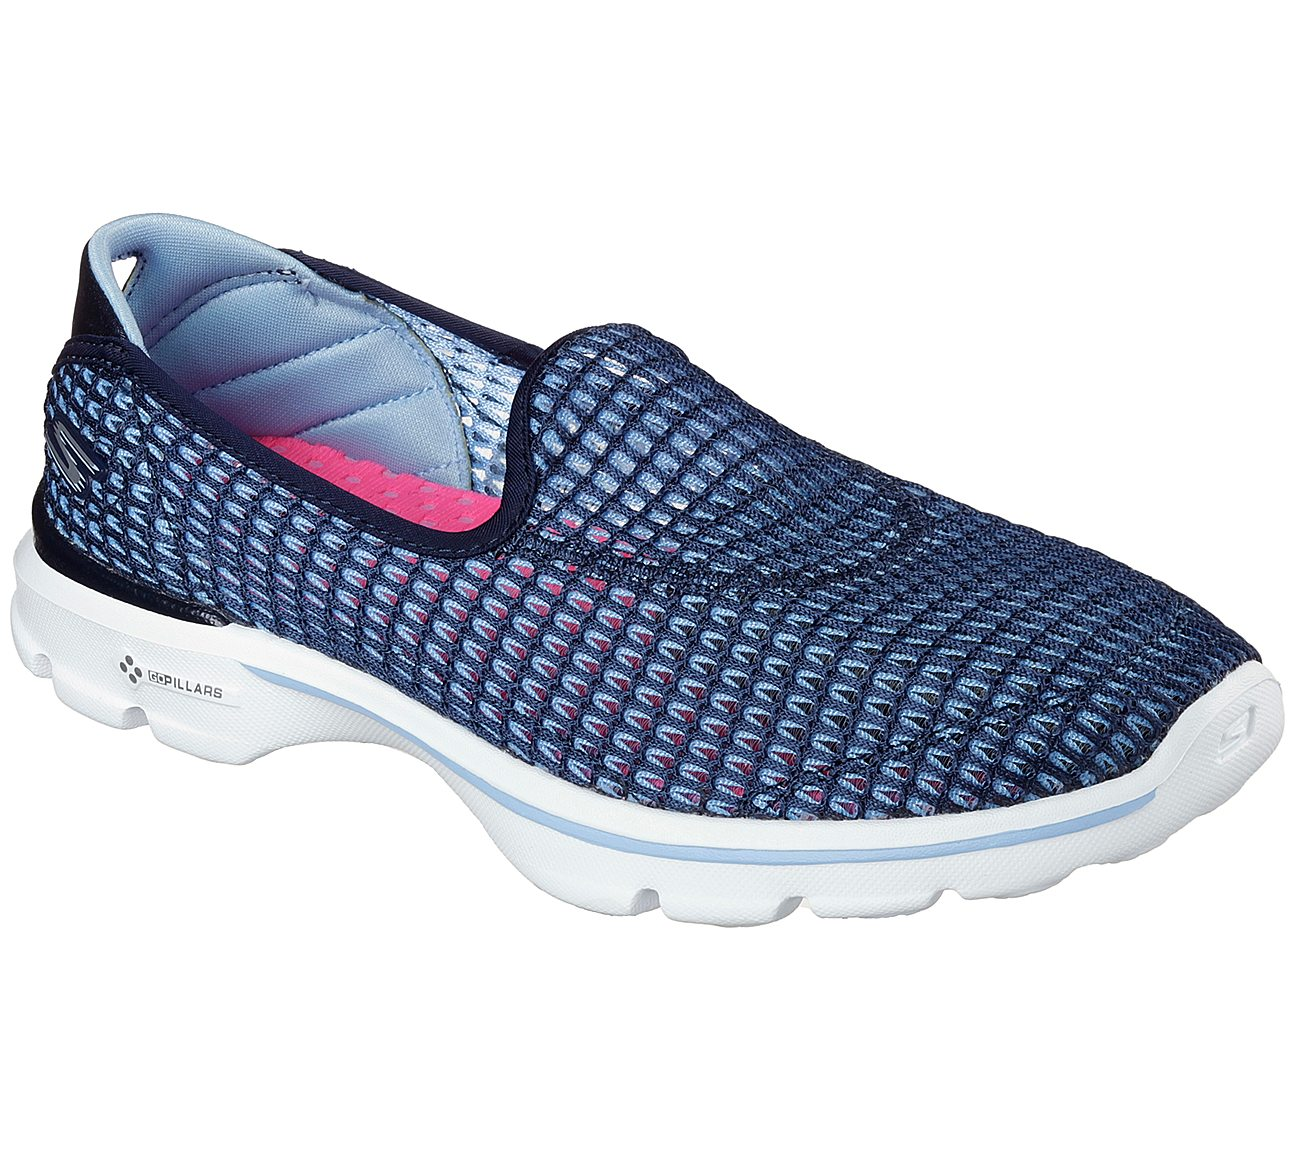 Skechers GOwalk 3 - Super Breathe 2. $65.00. 4.9. (9 reviews). Read 9  Reviews. Hover to zoom. NAVY / WHITE